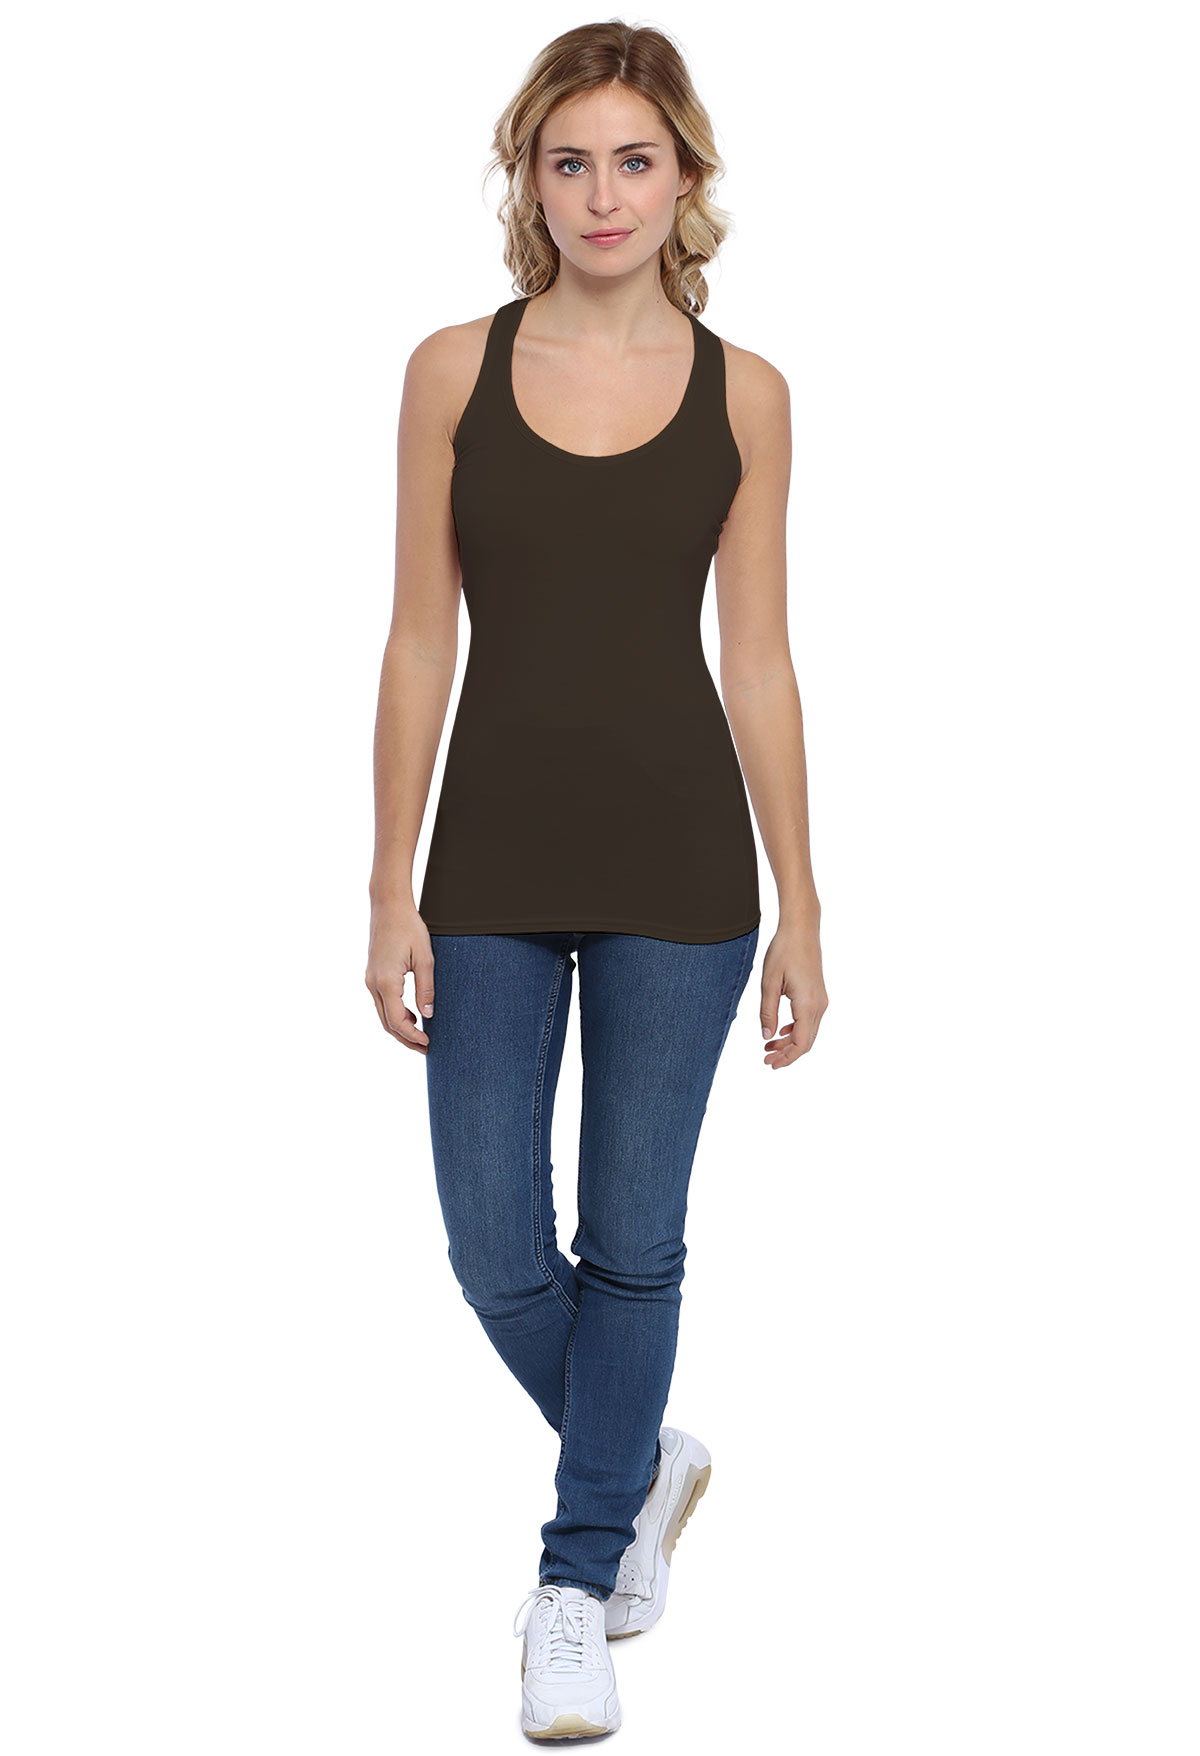 MARCELLE TANK TOP